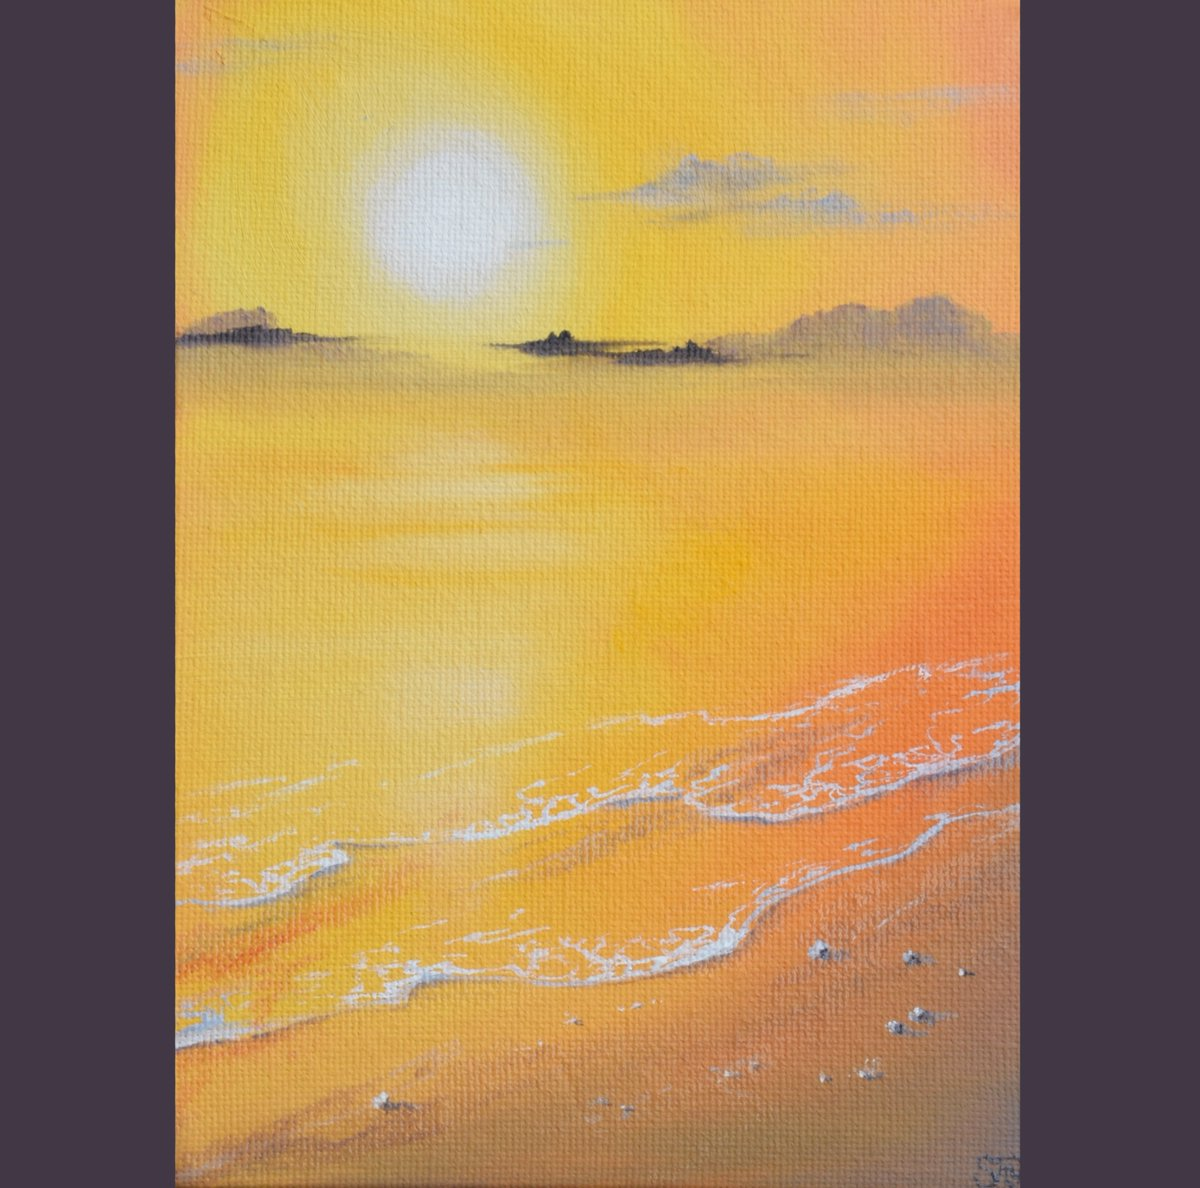 My latest finished #mini #oilpainting from a new #series of #sunset #paintings I&#39;m working on have a #Peaceful day everyone #hope #love<br>http://pic.twitter.com/m7meeiODoe